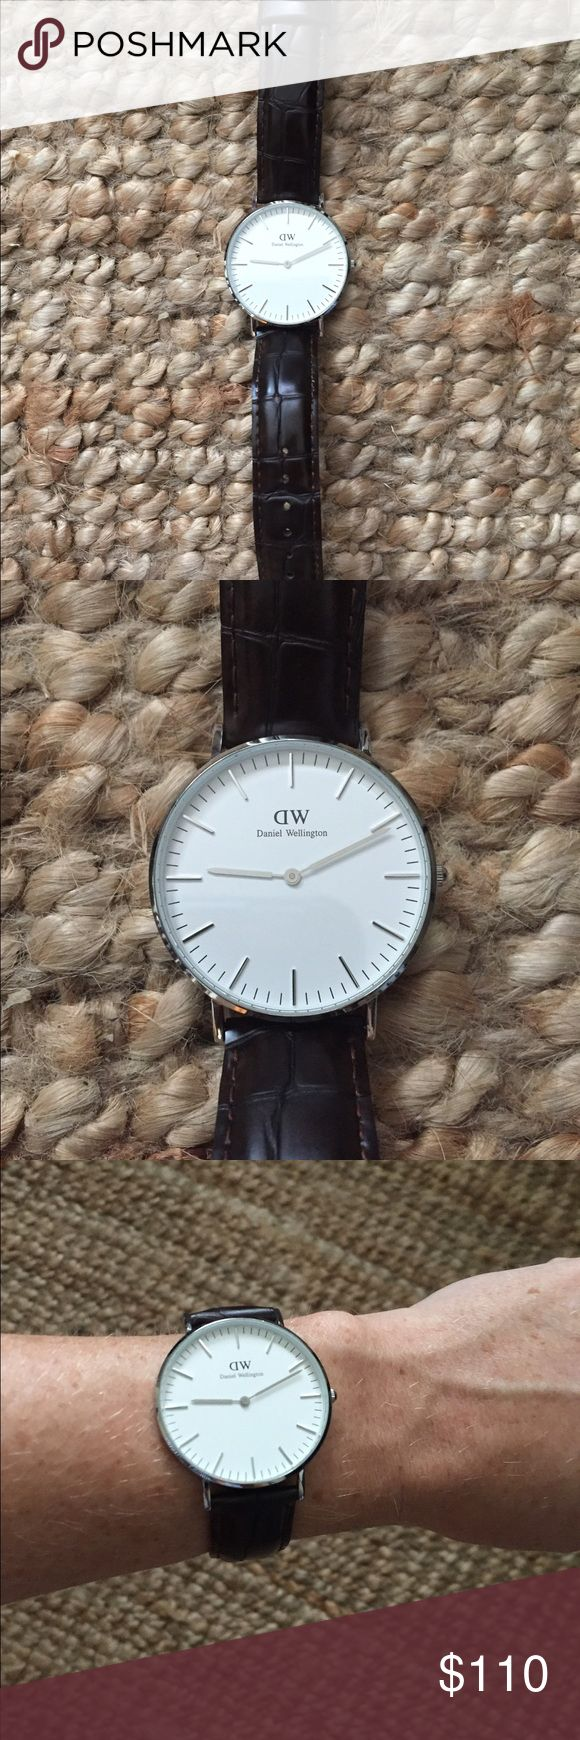 Daniel Wellington Watch Only worn a few times!! Dark brown faux croc band with a silver face. SO attractive! Send an offer! Daniel Wellington Accessories Watches